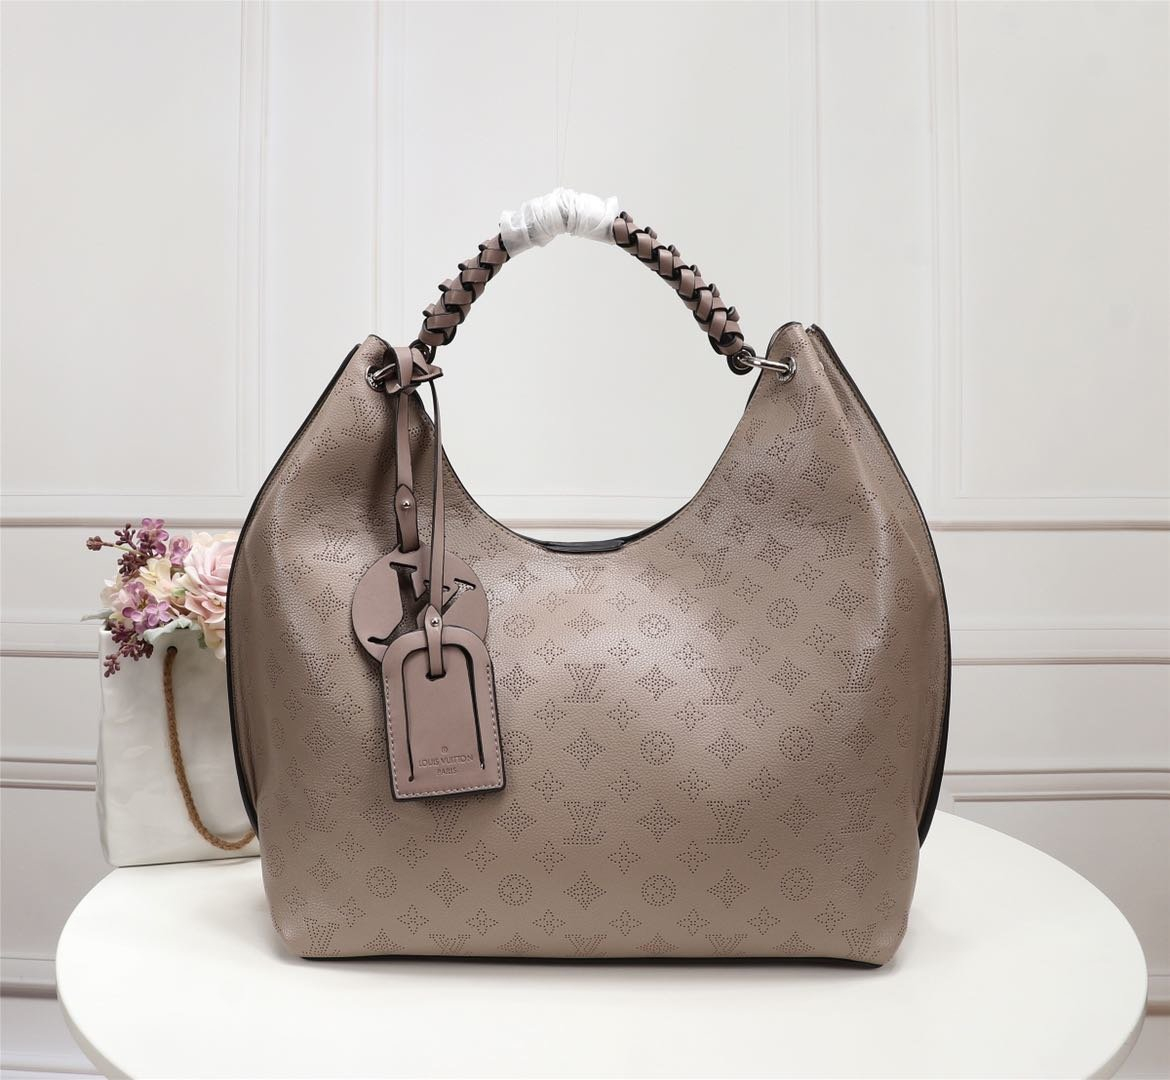 Image of lv louis vuitton womens leather shoulder bag satchel tote bags crossbody 532